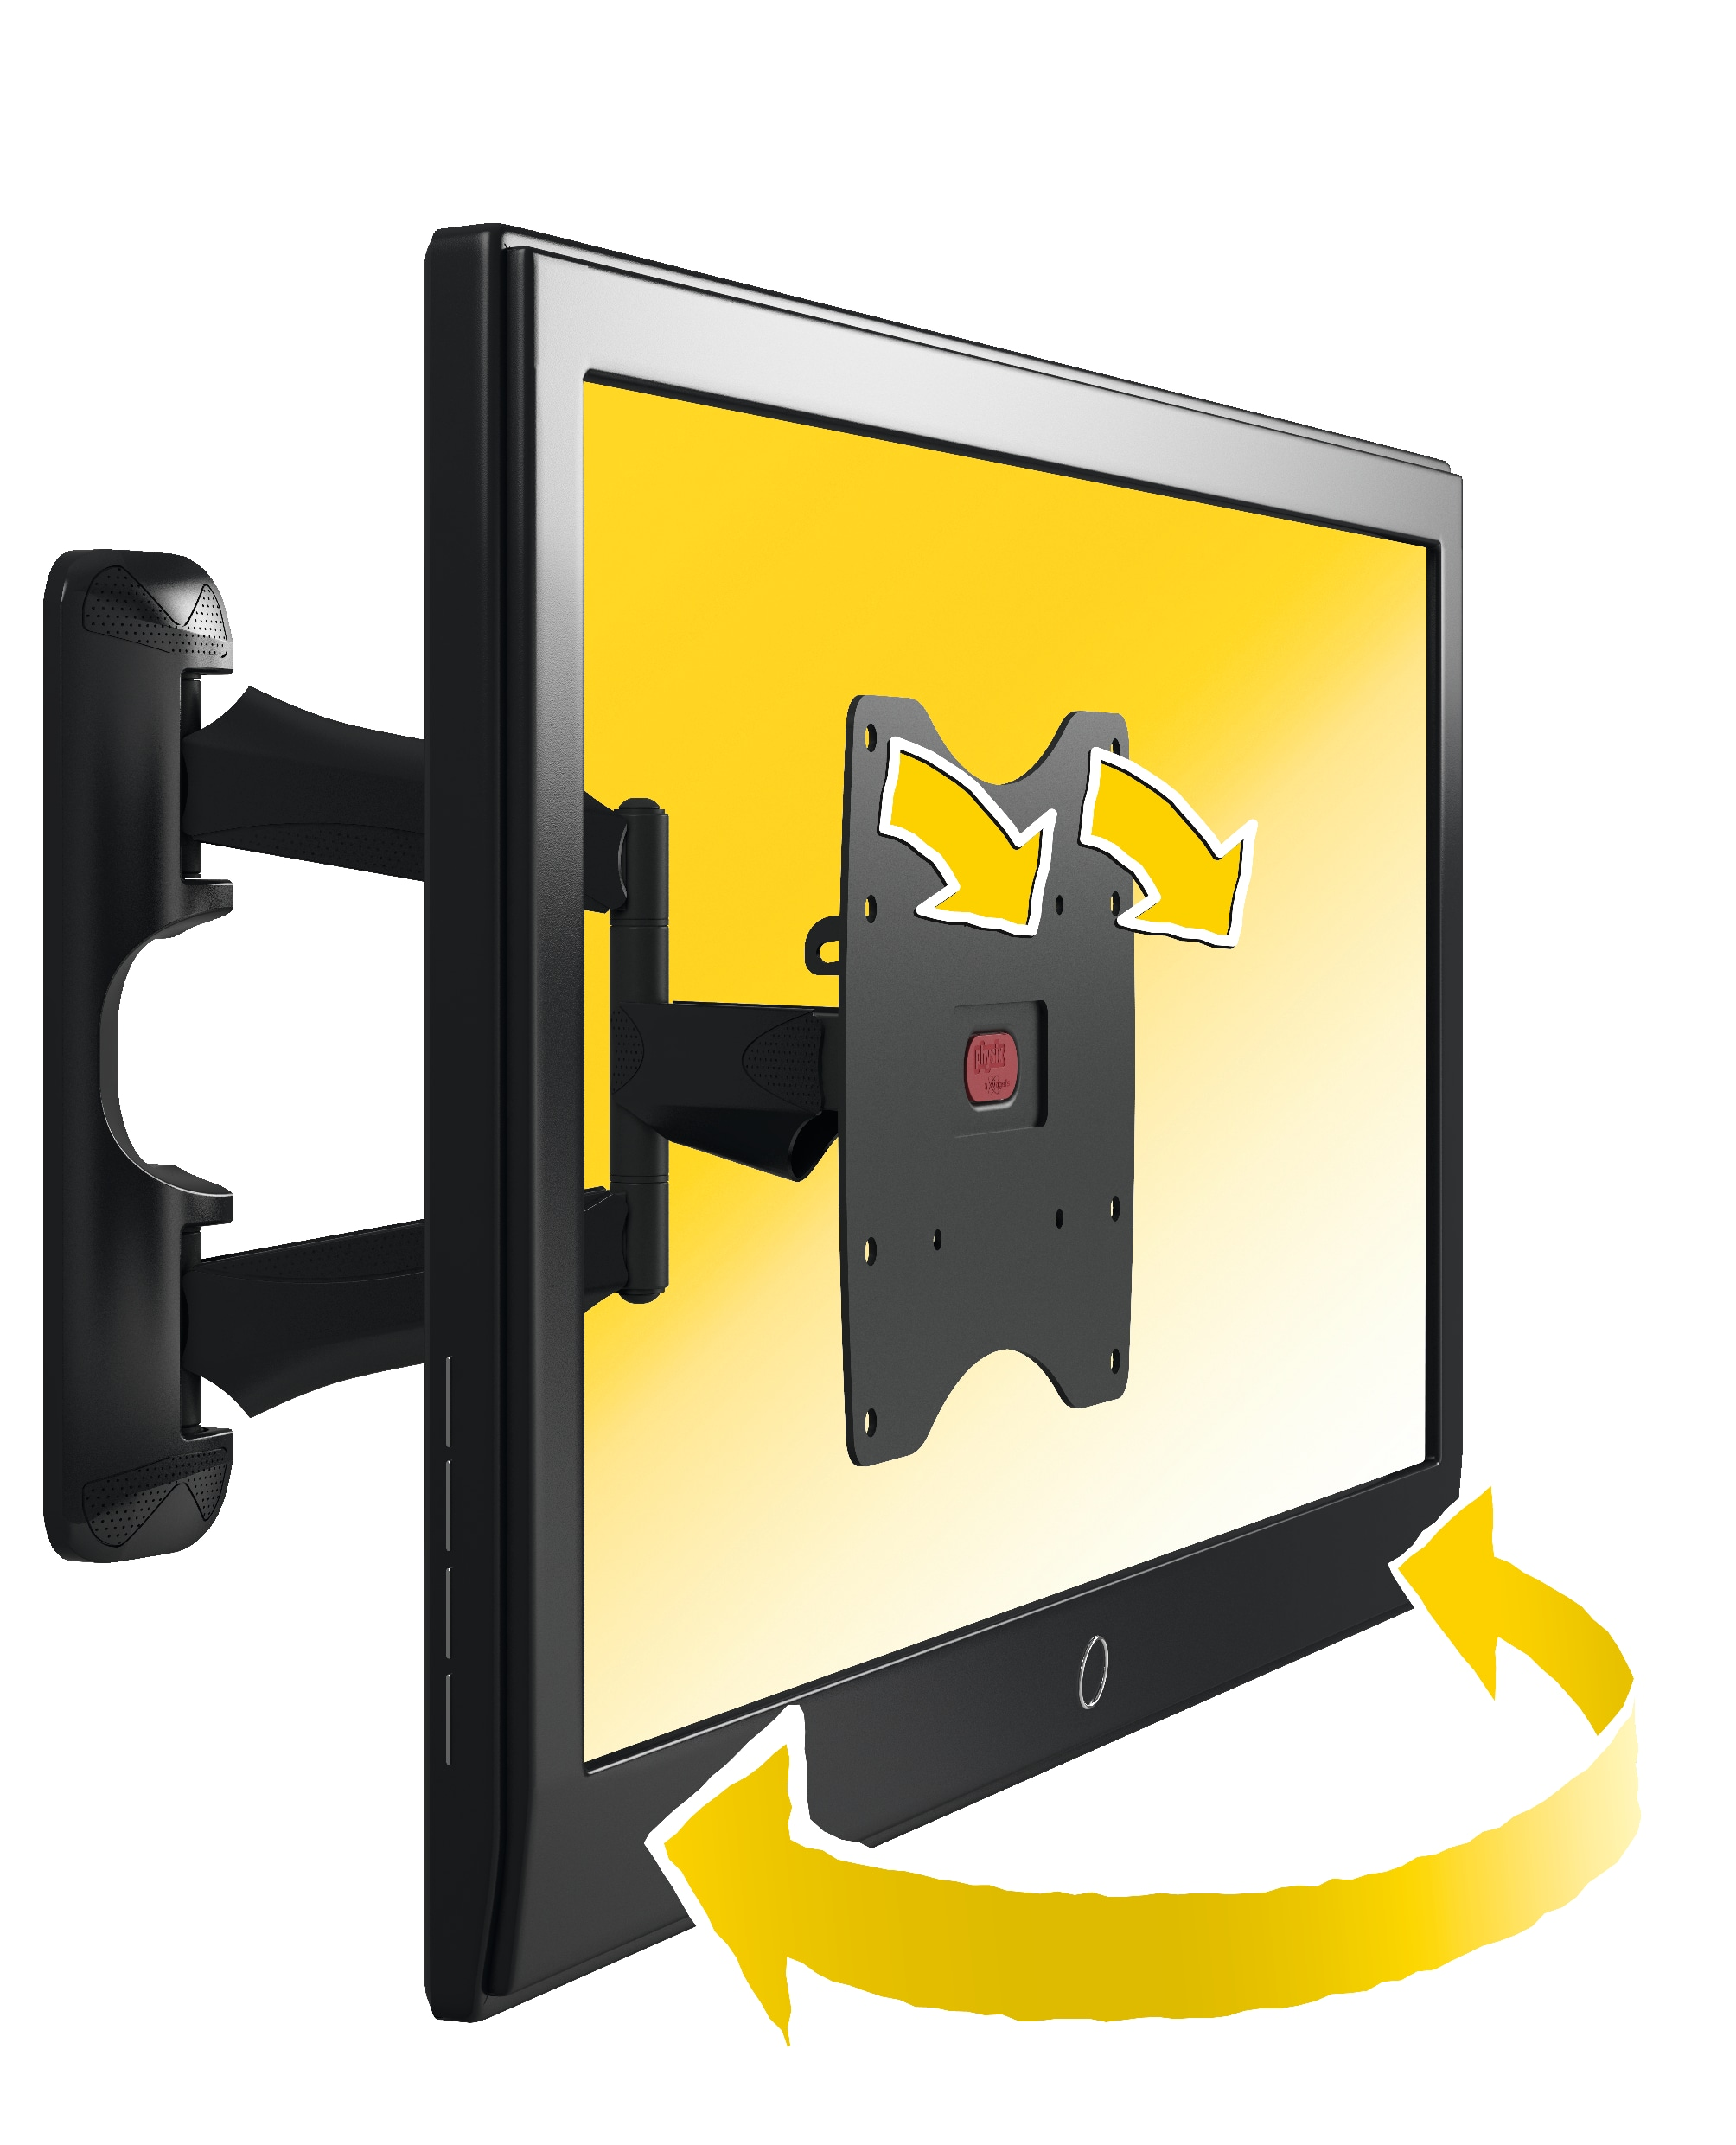 PHW 400 S Full-Motion TV Wall Mount